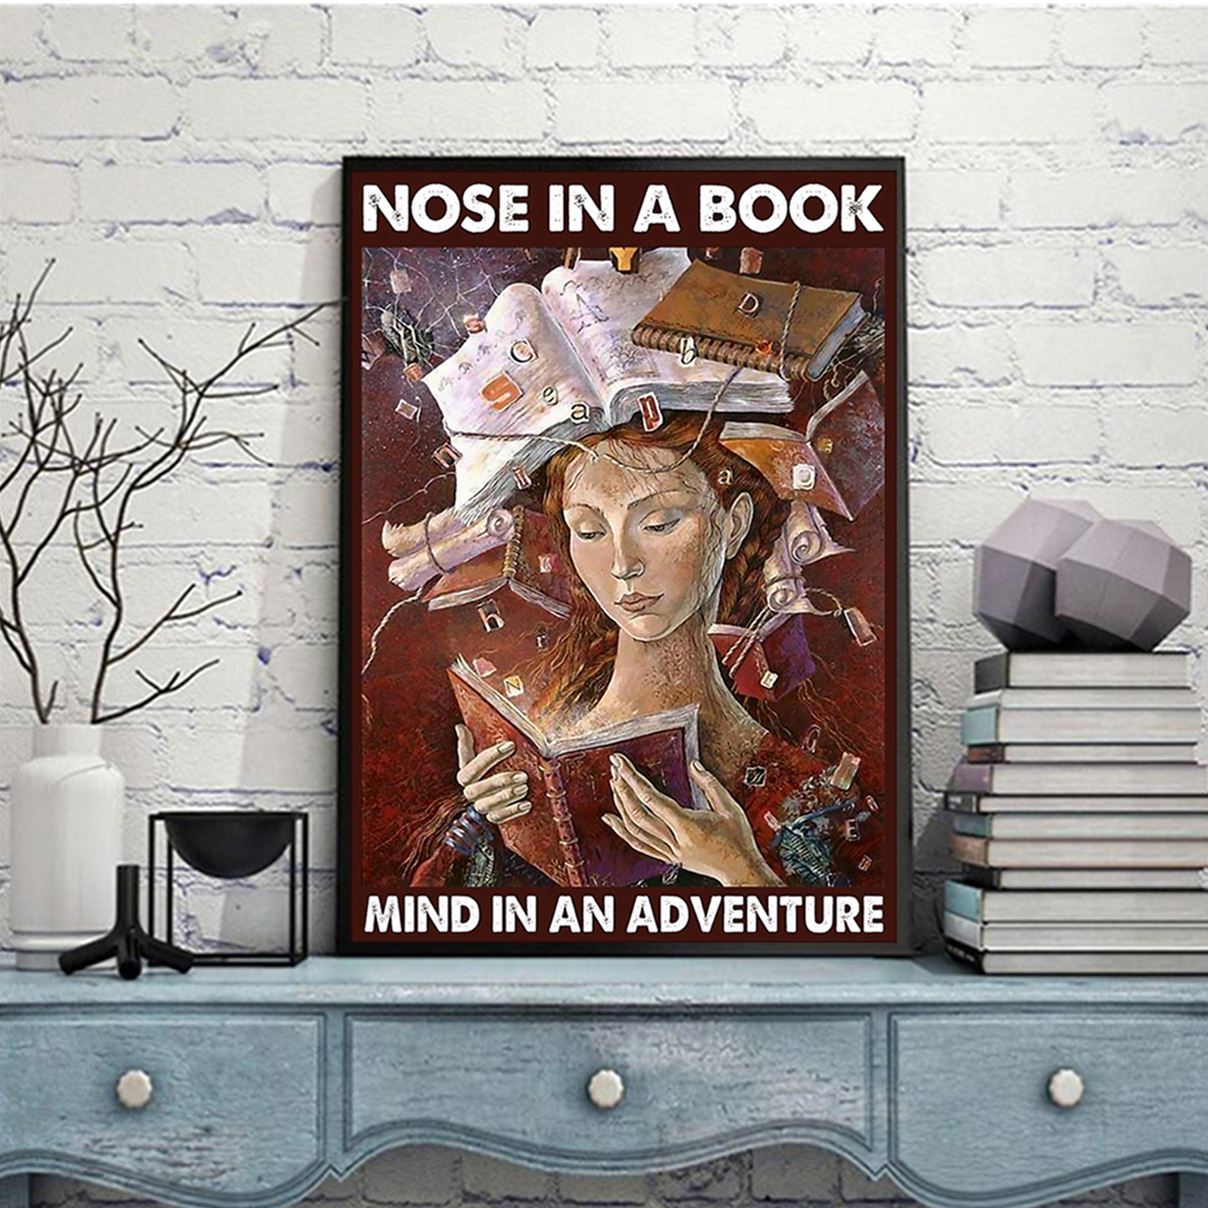 Nose in a book mind in an adventure poster A3